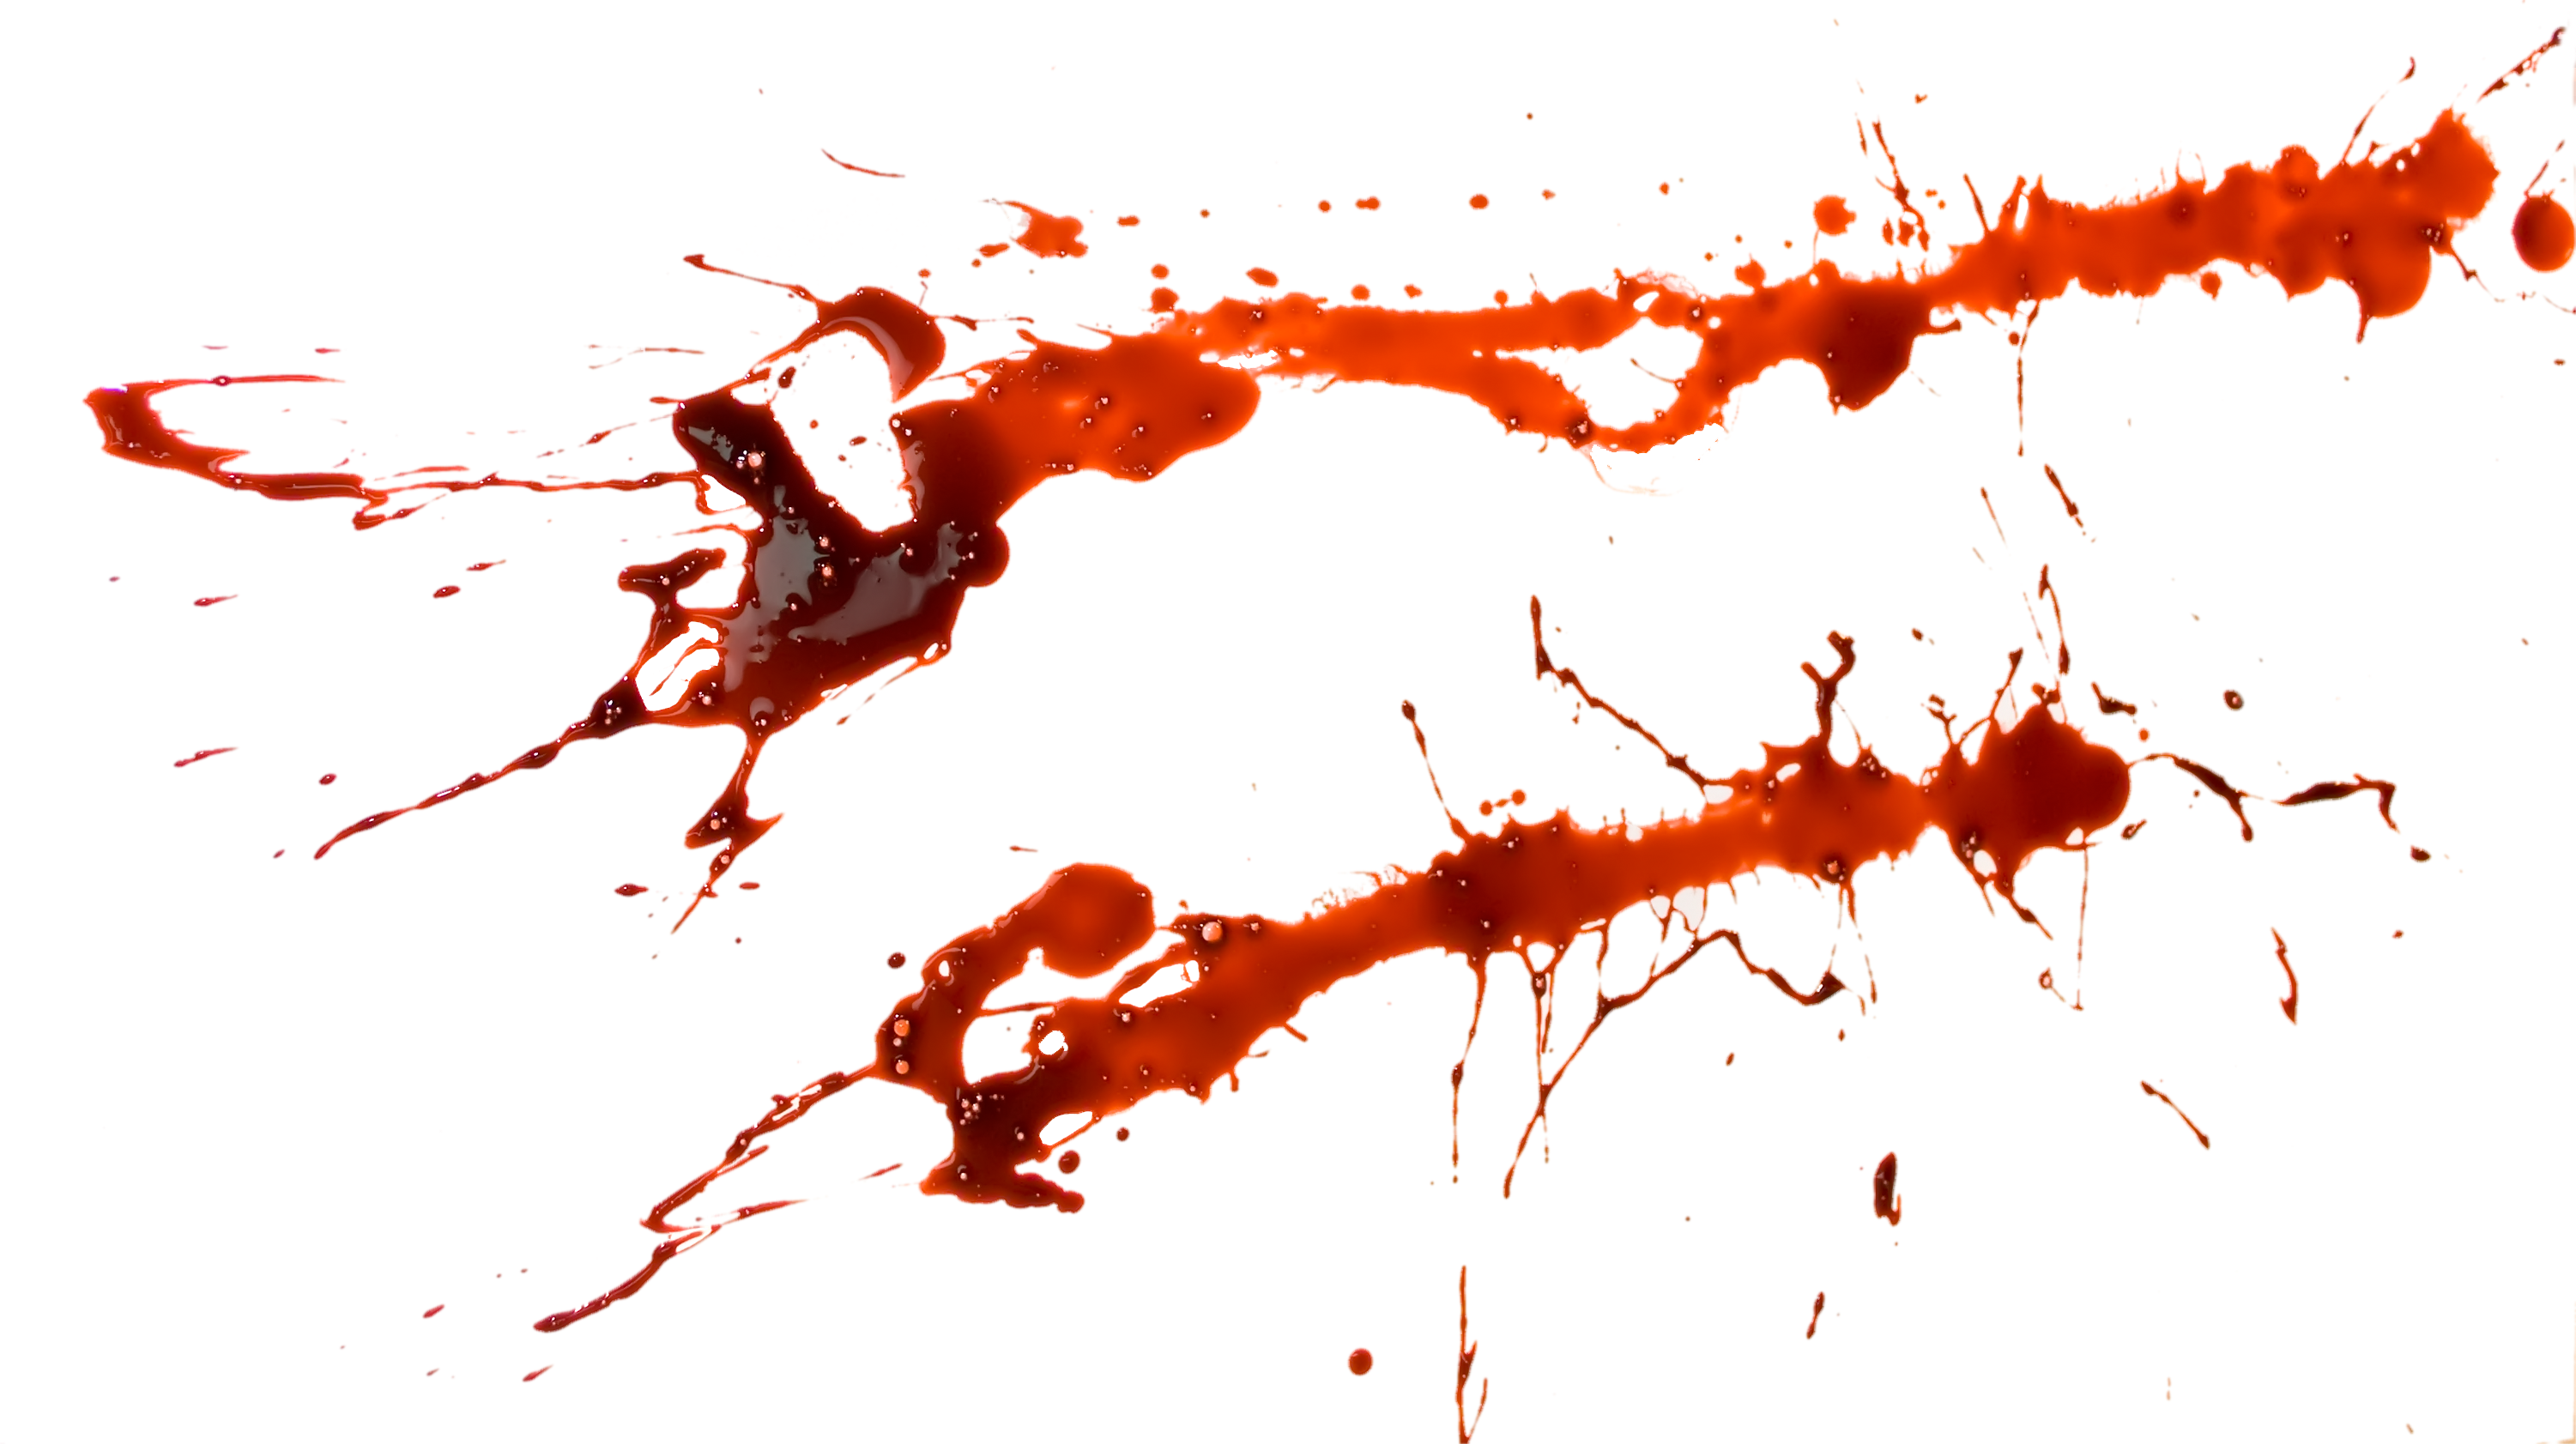 Transparent blood splatter background. Bloody scar png graphic freeuse library